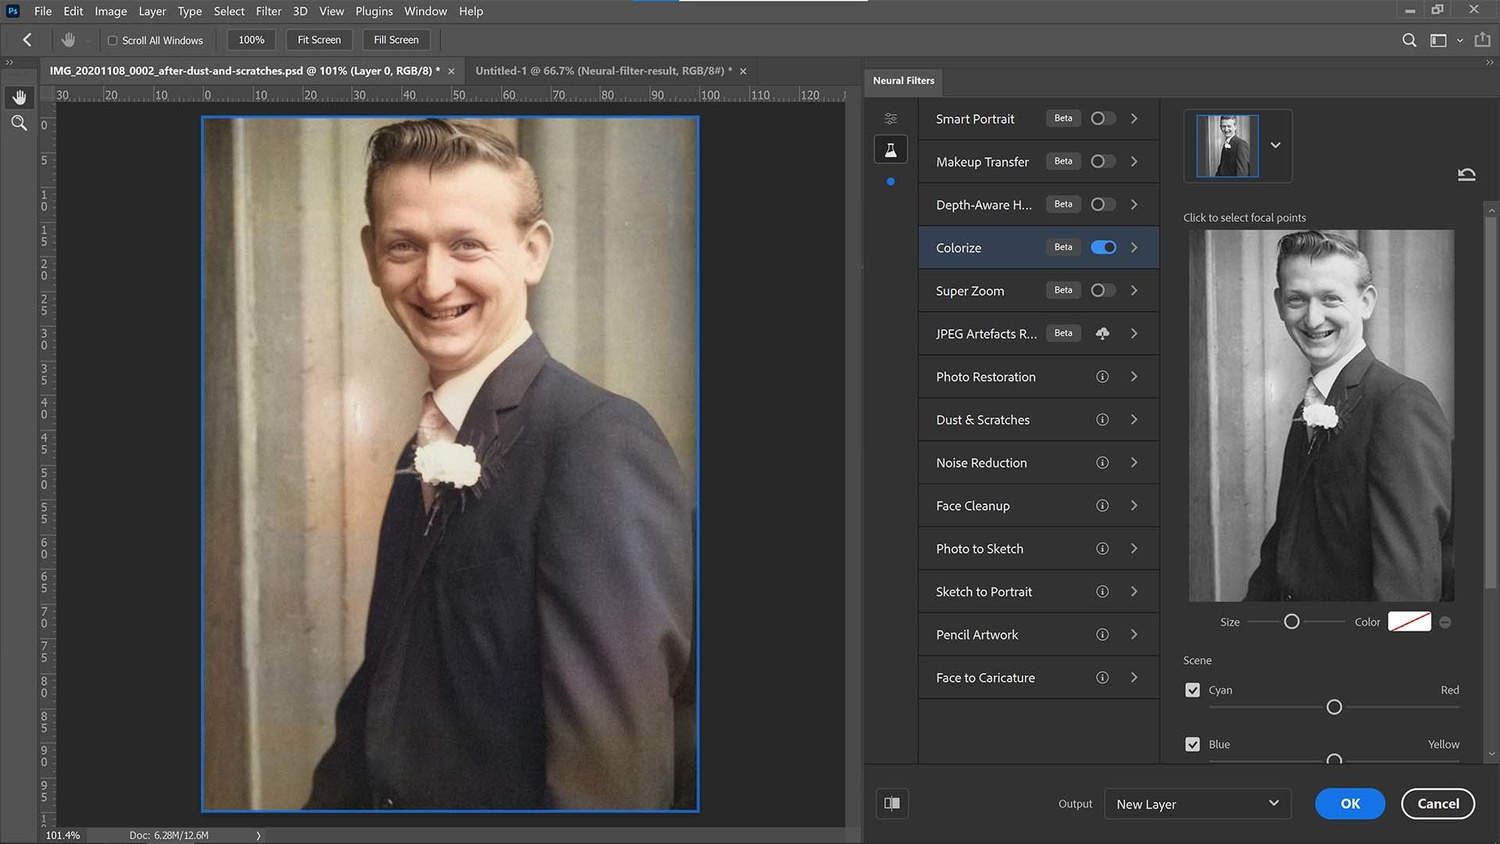 Colorize filter in Photoshop CC